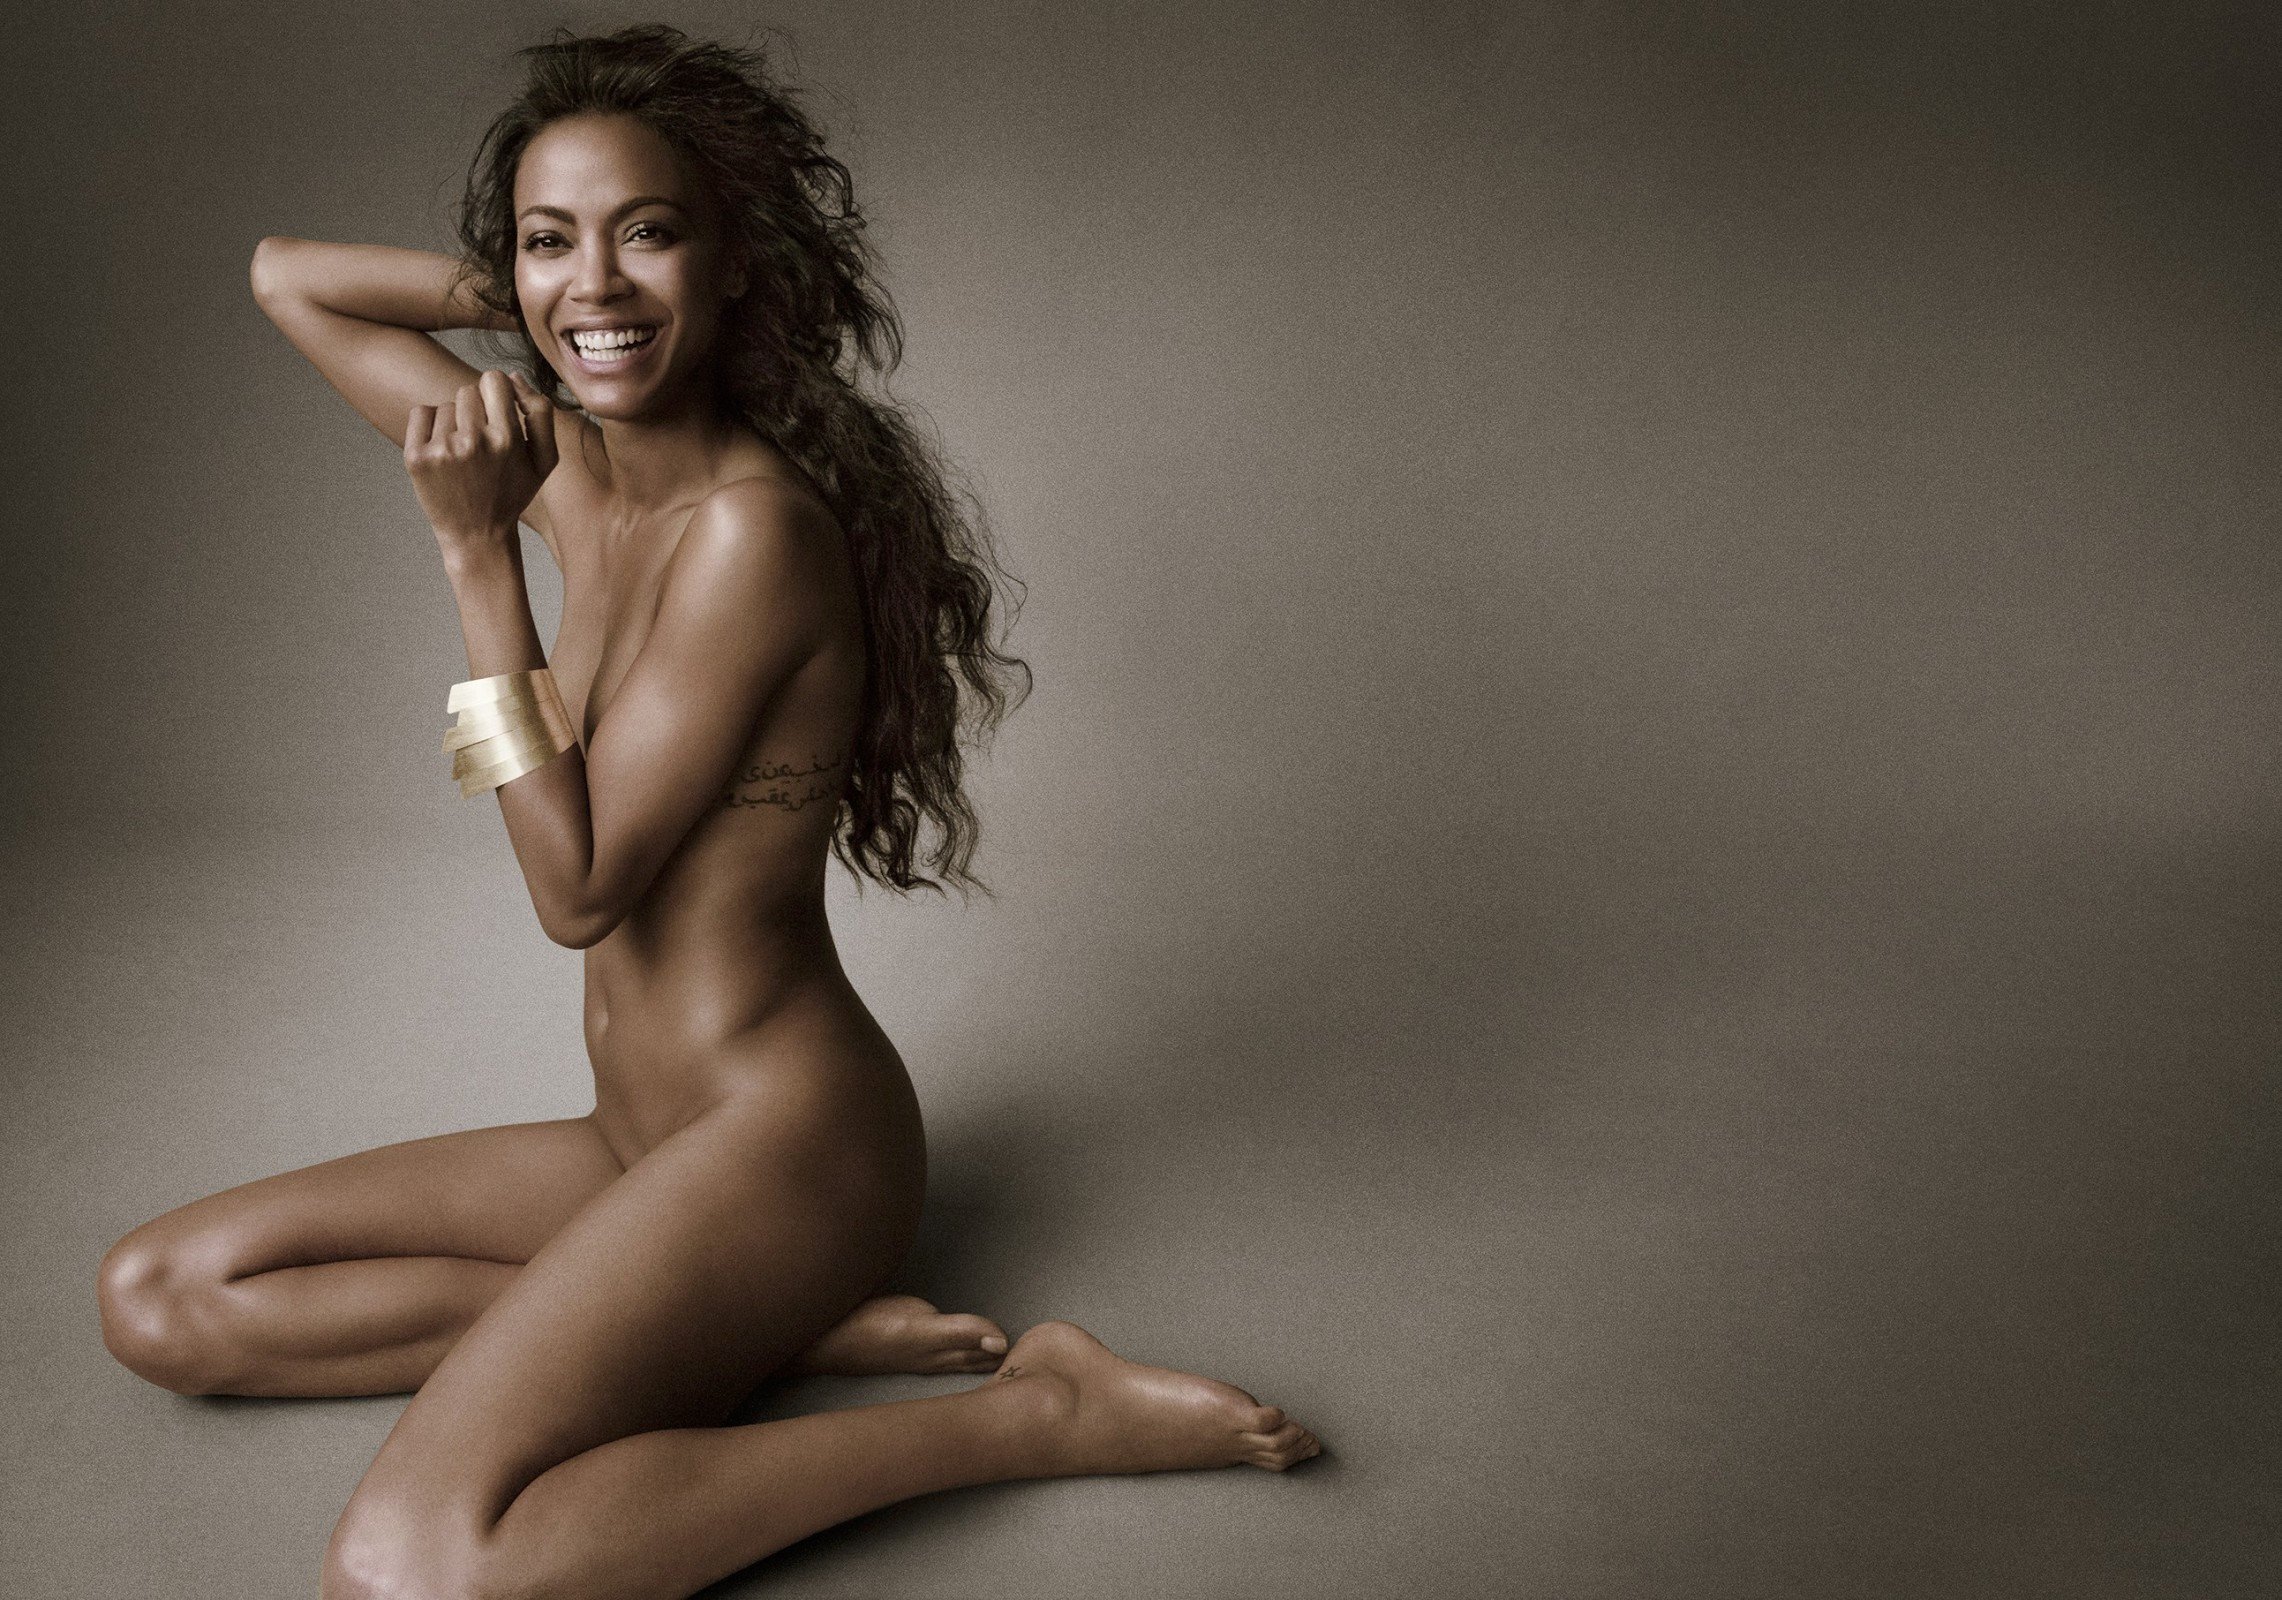 Consider, that Zoe saldana nude magazine words... fantasy